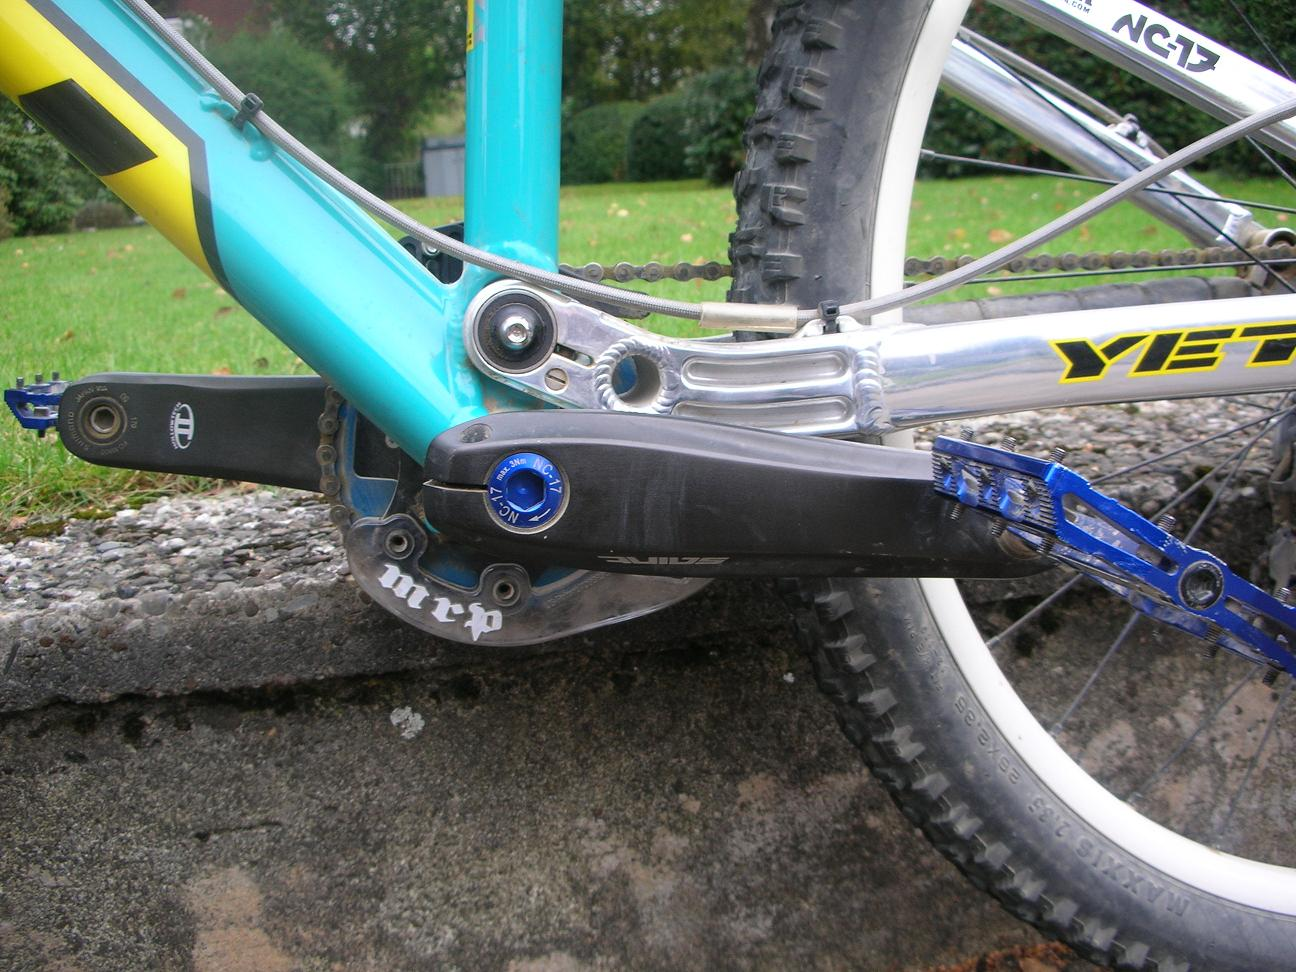 YOUR BIKES, // YOUR YETI, Andre\'s YETI 4X > built by Andre HIMSELF ...